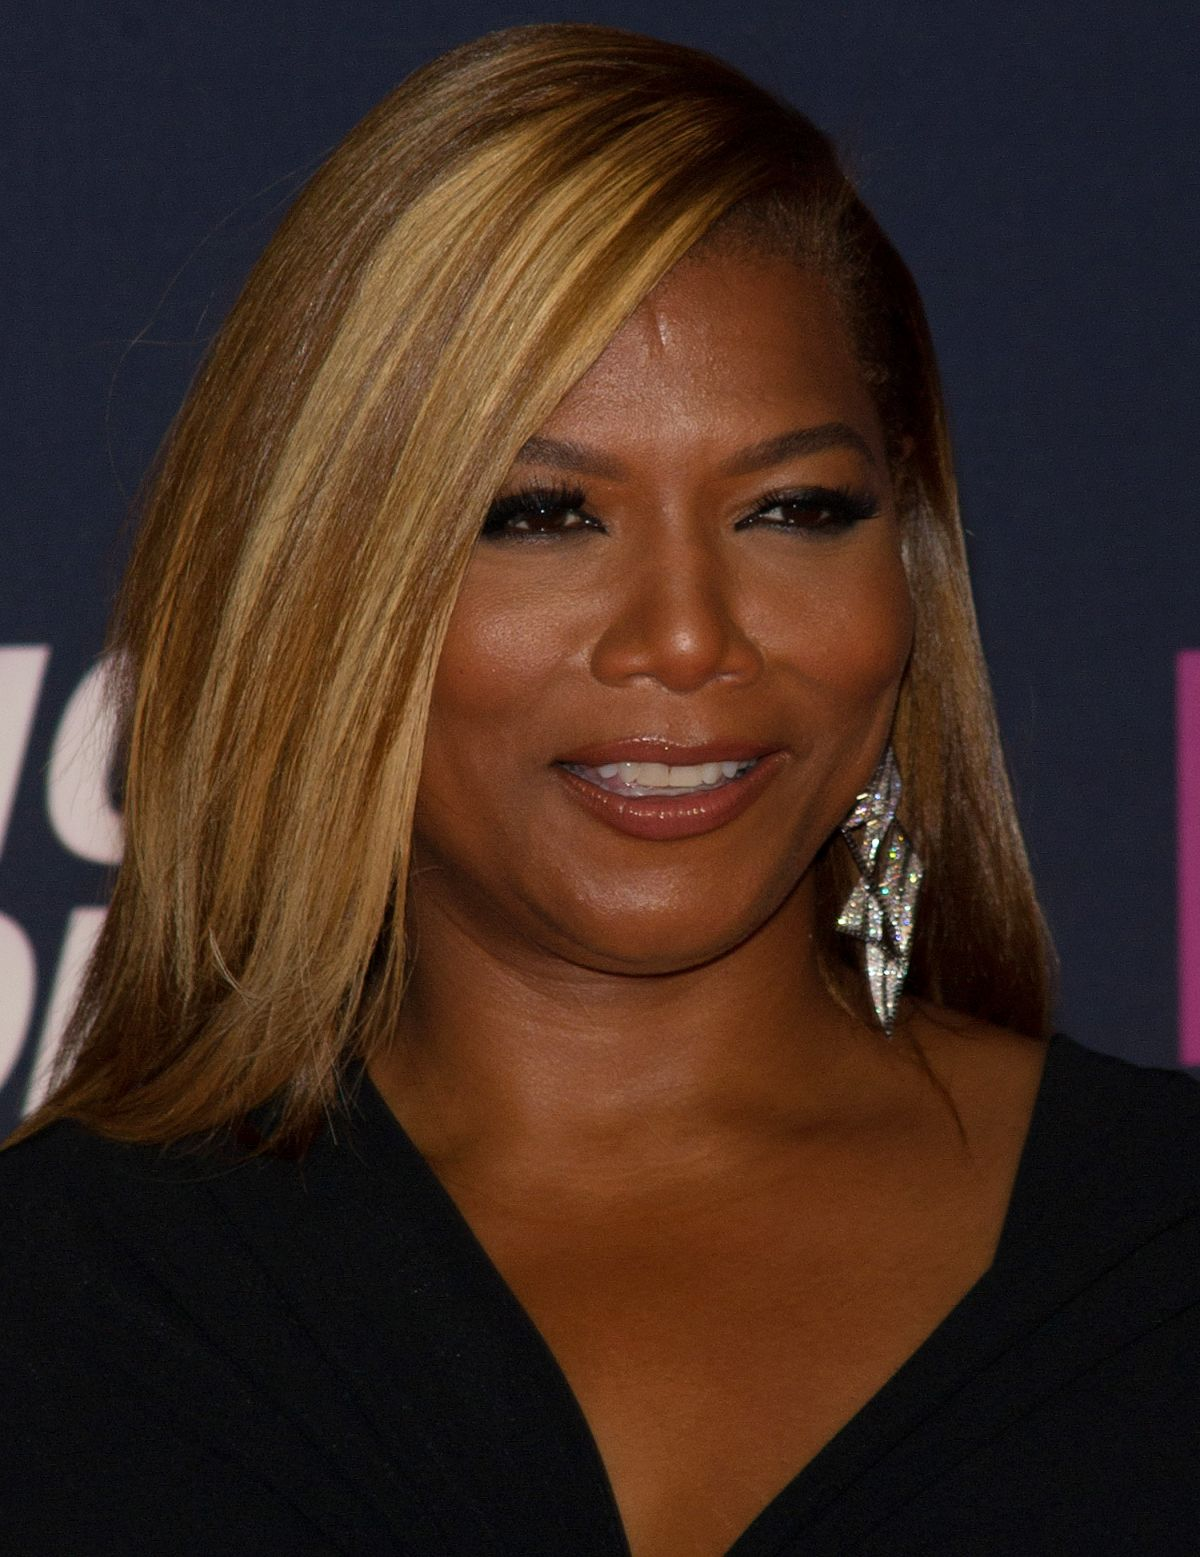 QUEEN LATIFAH at VH1 Hip Hop Honors in New York 07/11/2016